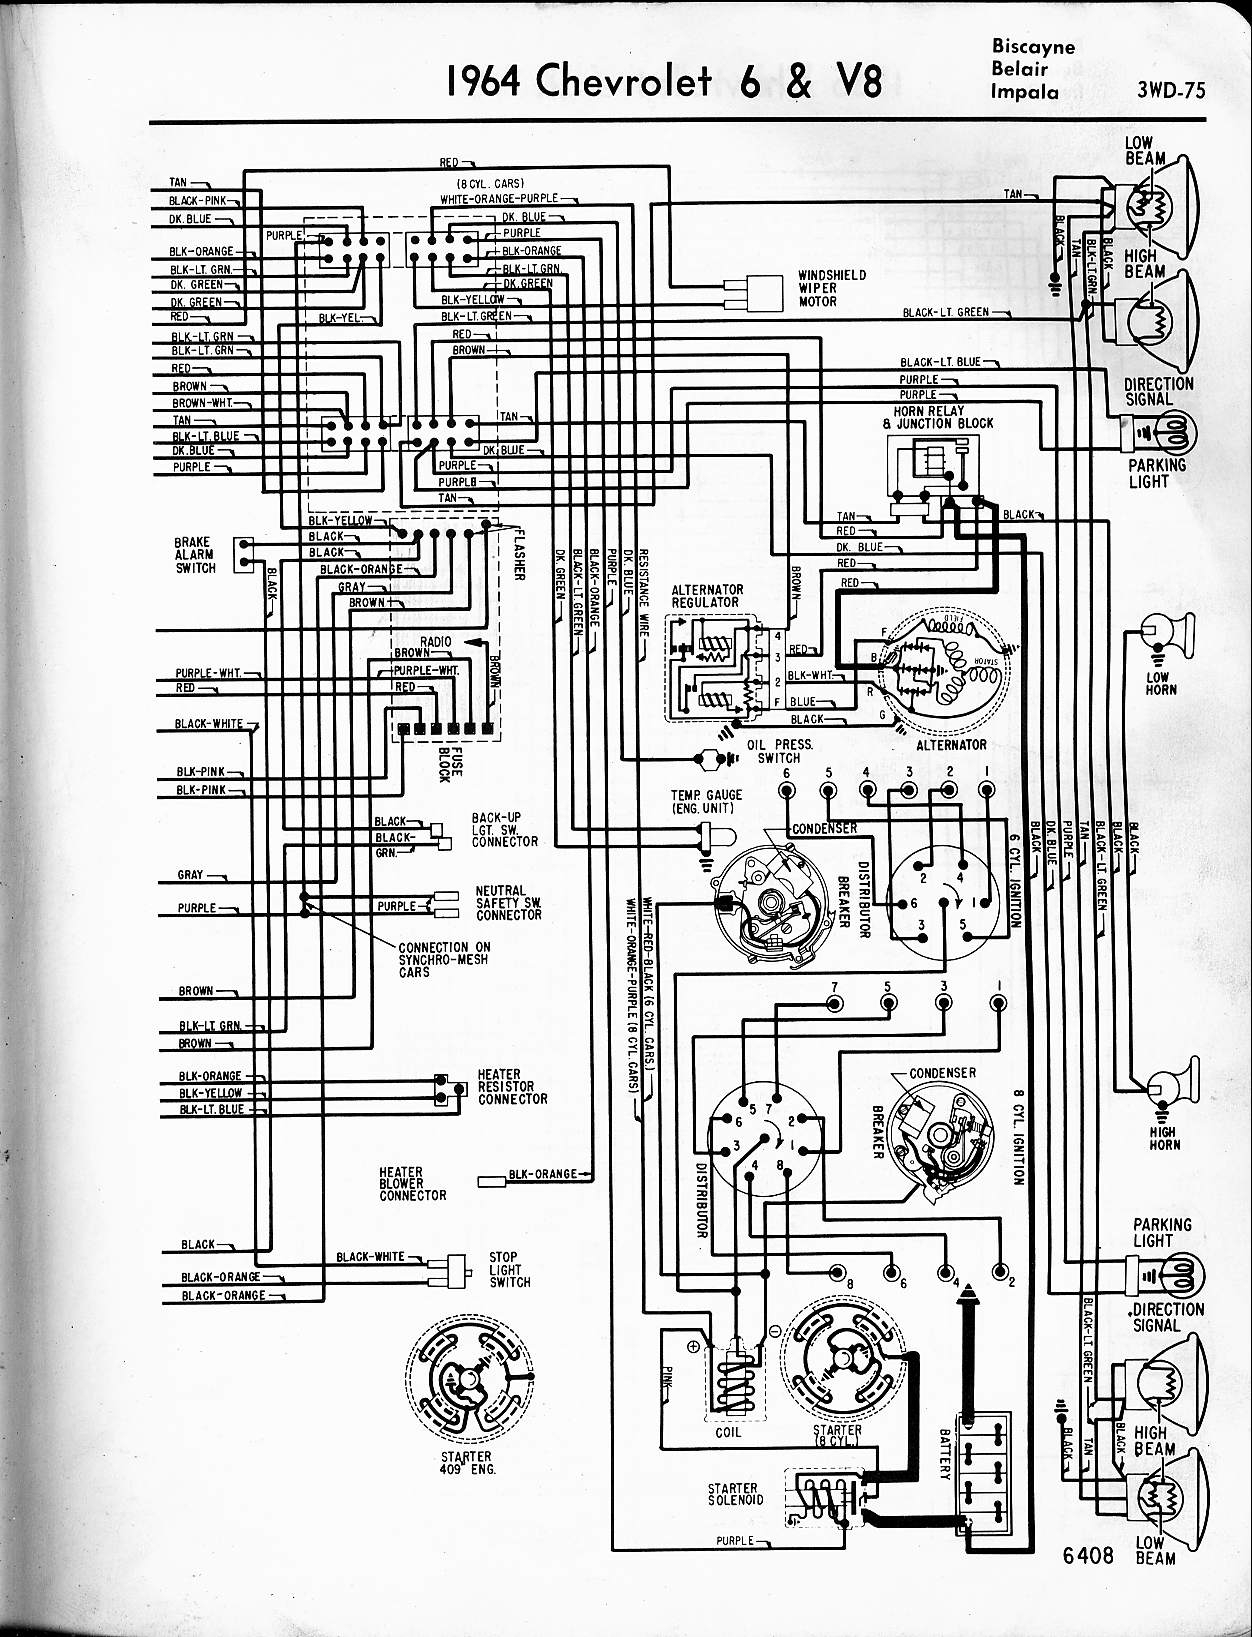 2005 chevy impala wiring diagram Download-1964 6 & V8 Biscayne Belair Impala 7-t